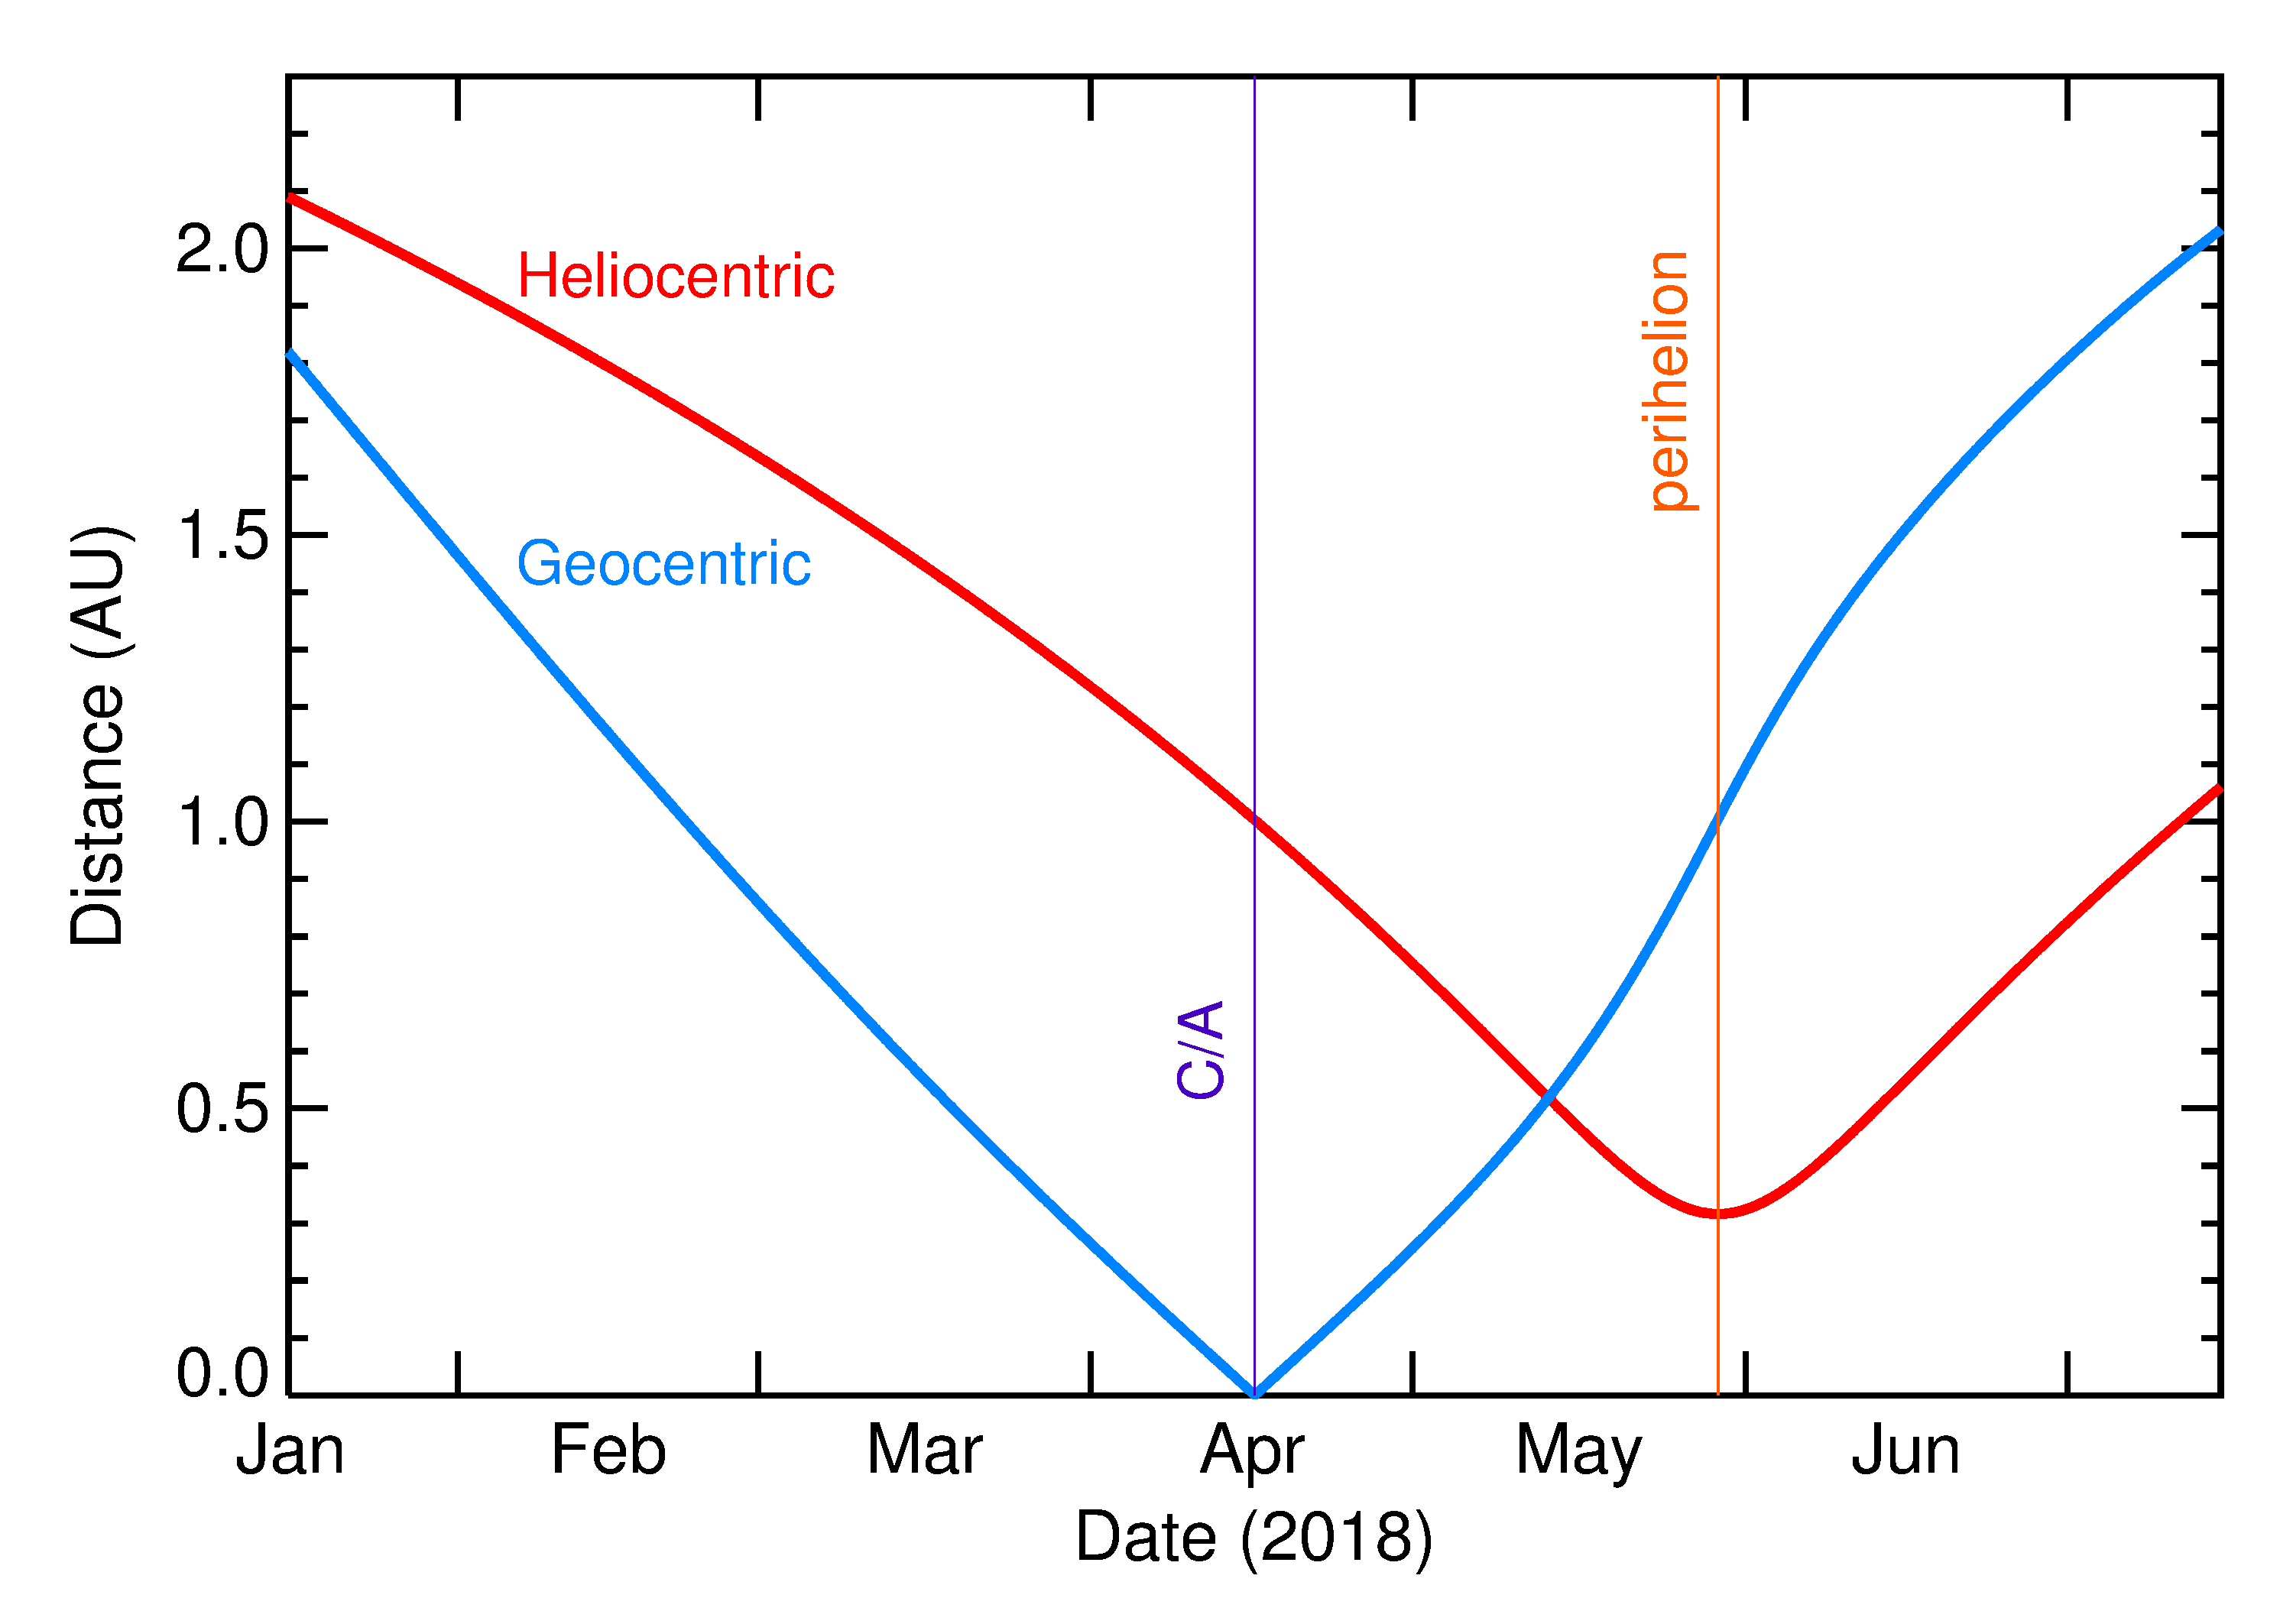 Heliocentric and Geocentric Distances of 2018 GE3 in the months around closest approach